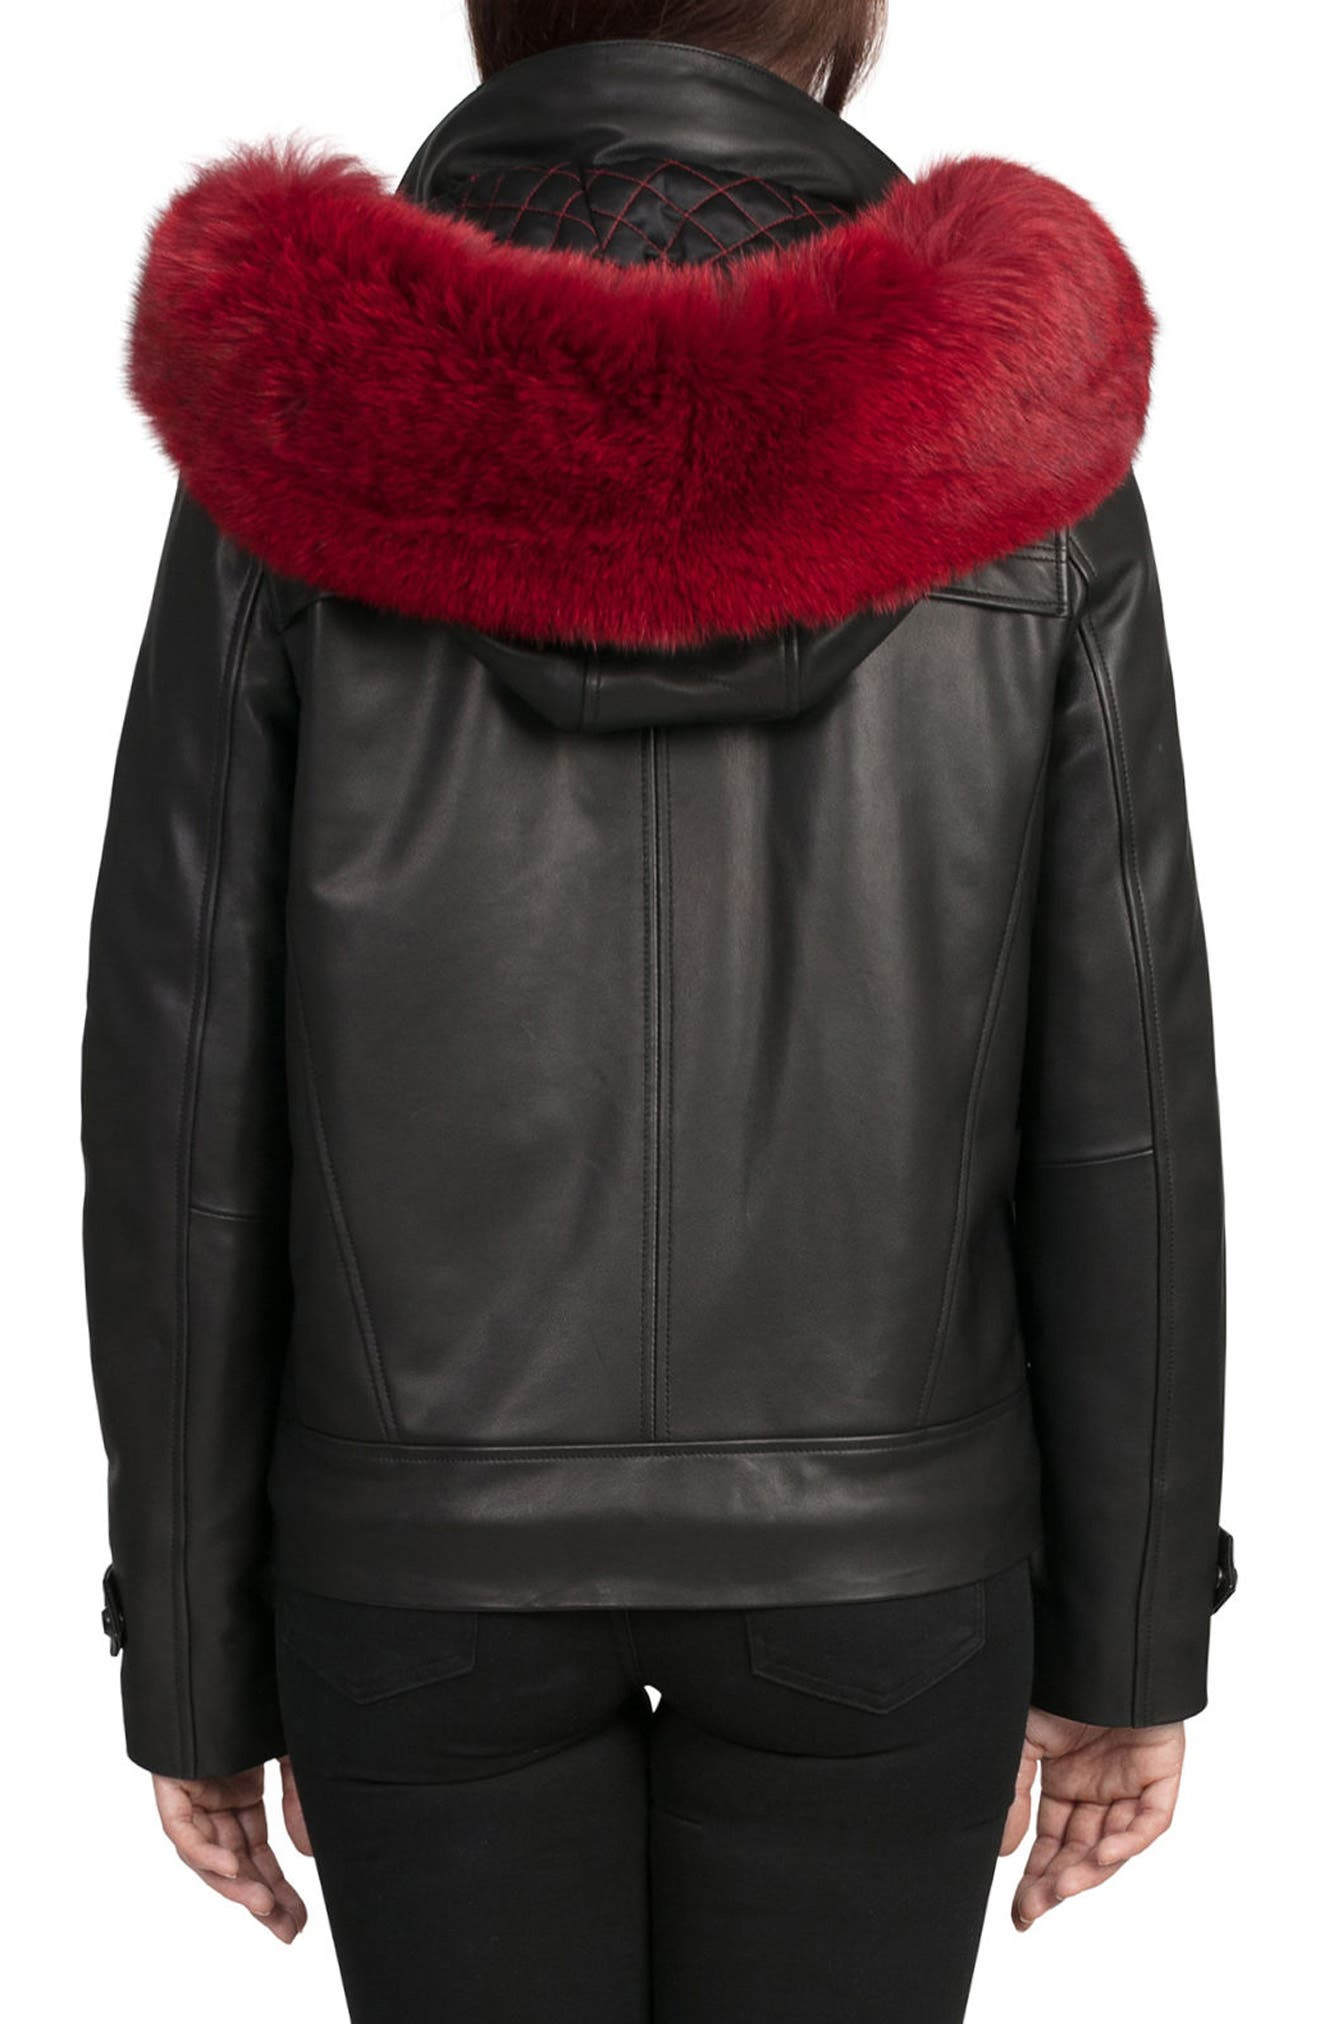 BAGATELLE.CITY The Aspen Leather Jacket with Genuine Fox Fur Trim,                             Alternate thumbnail 2, color,                             Black/ Red